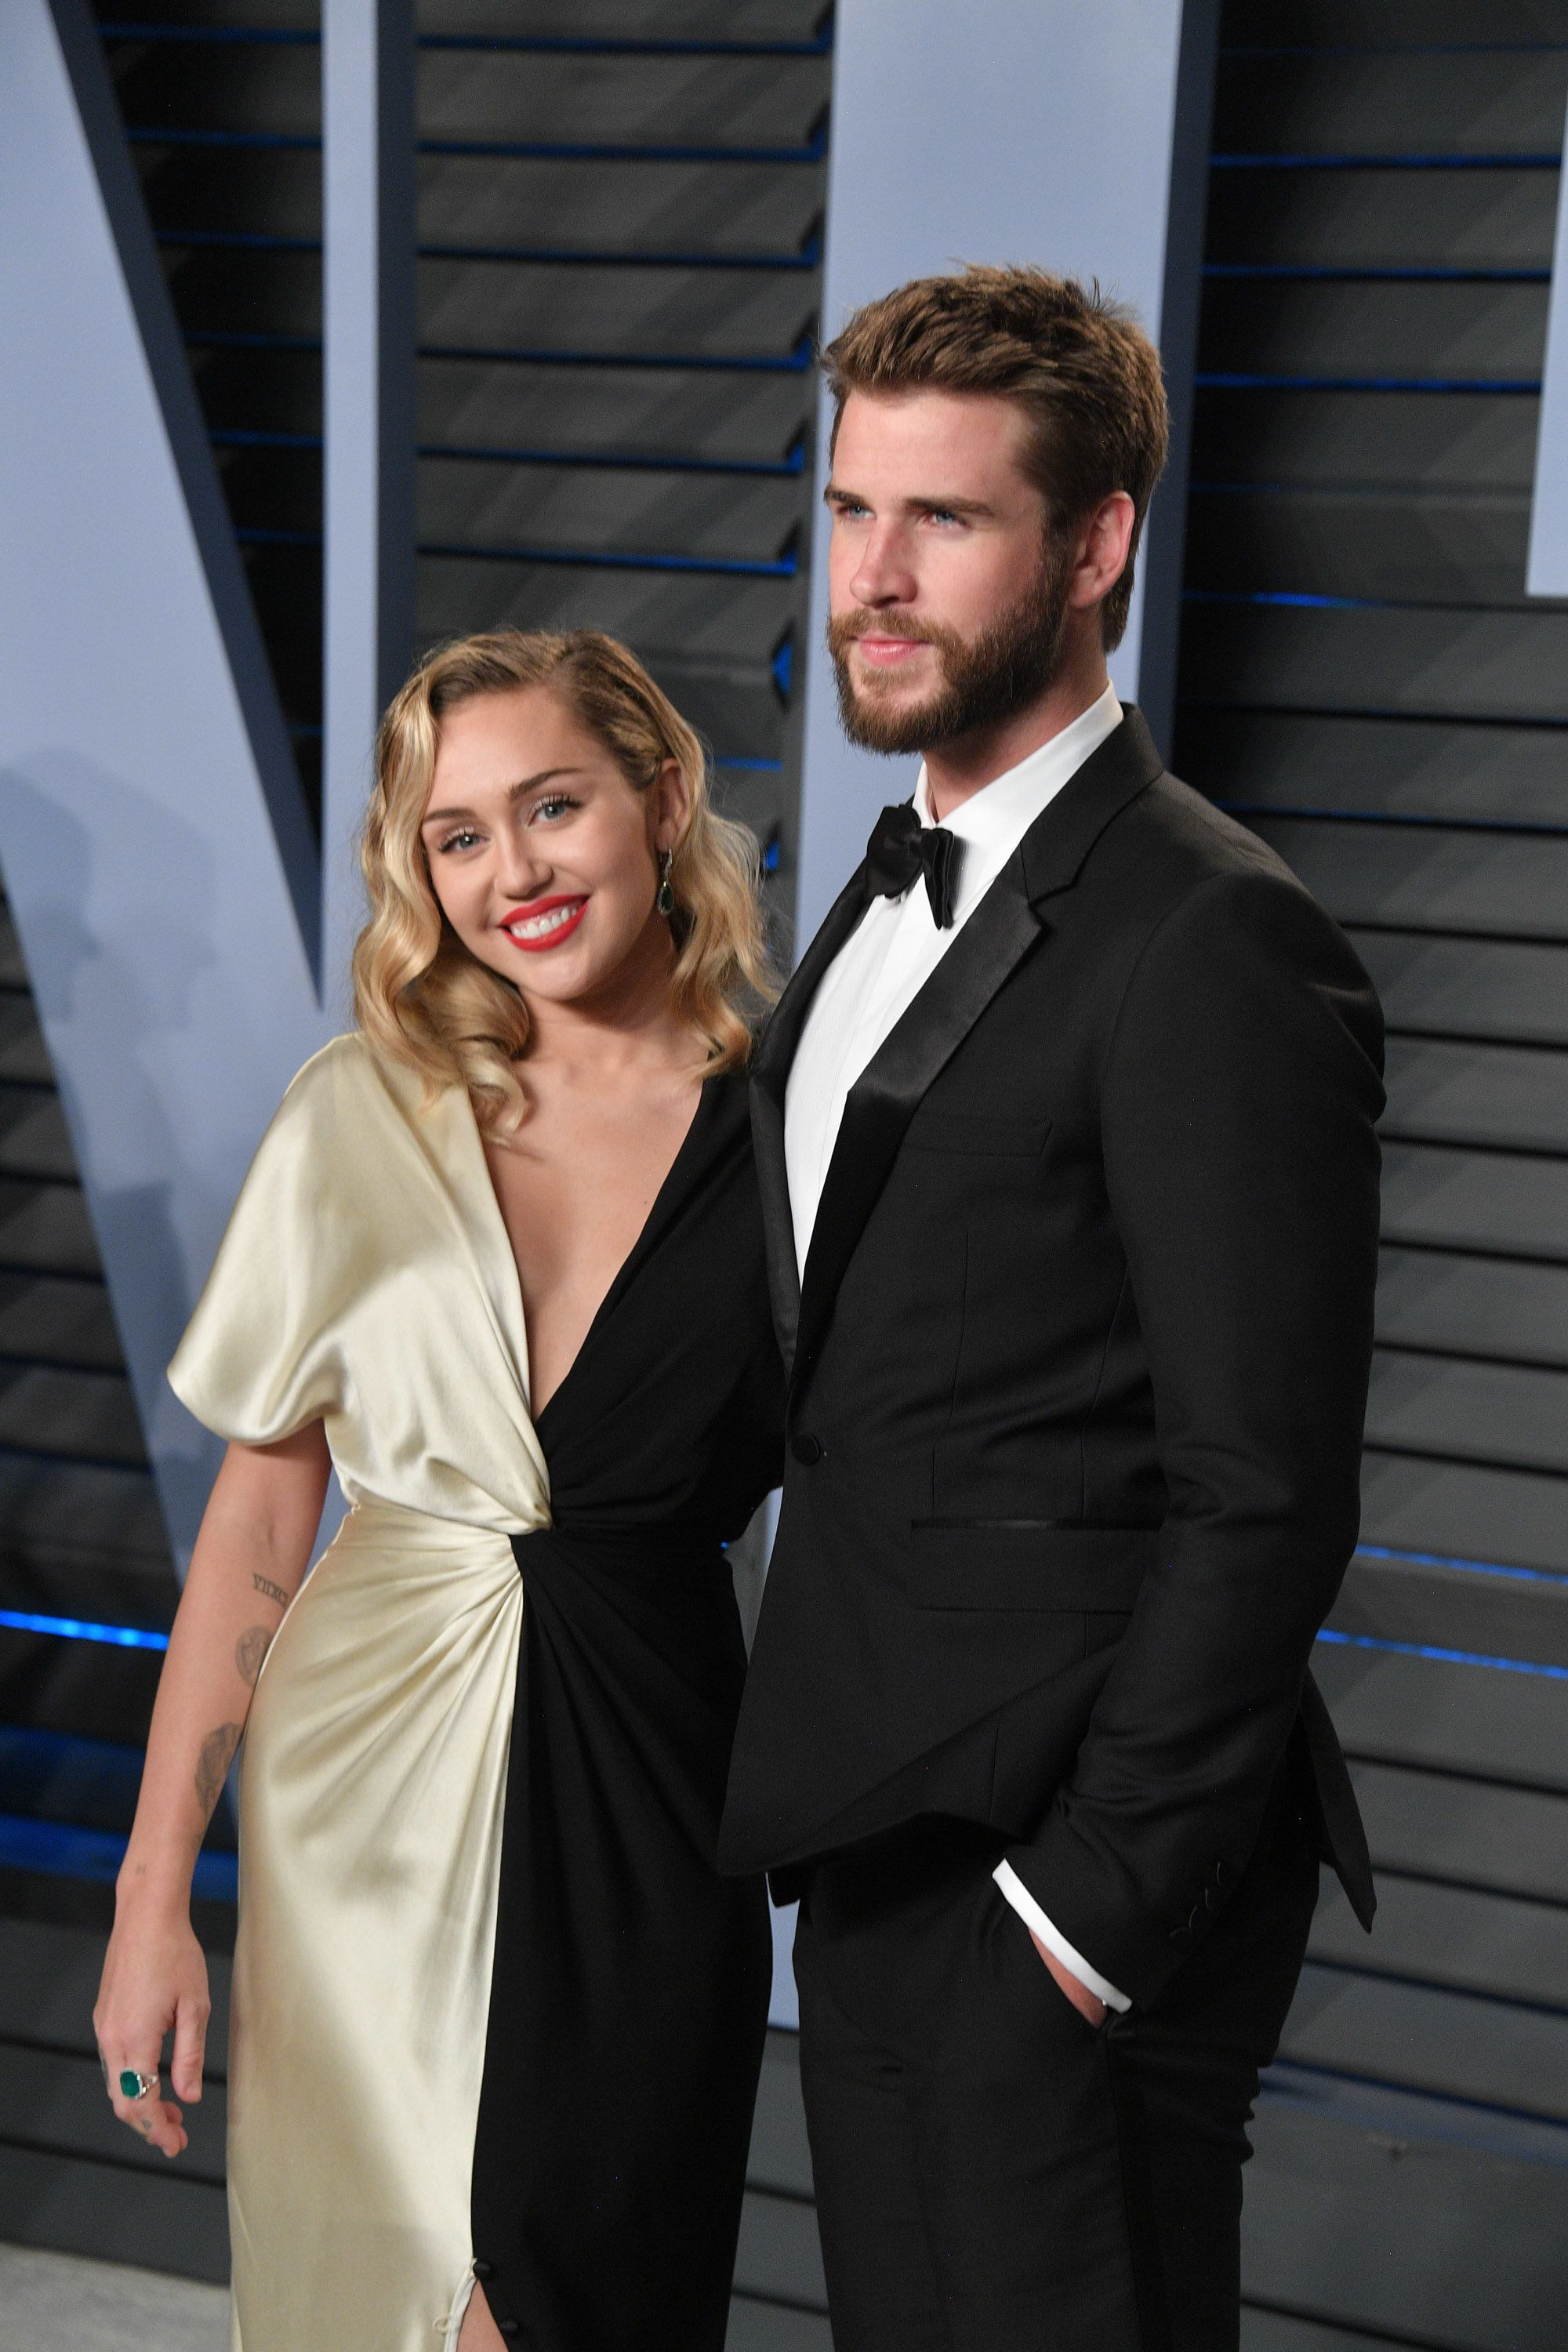 Miley Cyrus and Liam Hemsworth arrive at the 2018 Vanity Fair Oscar